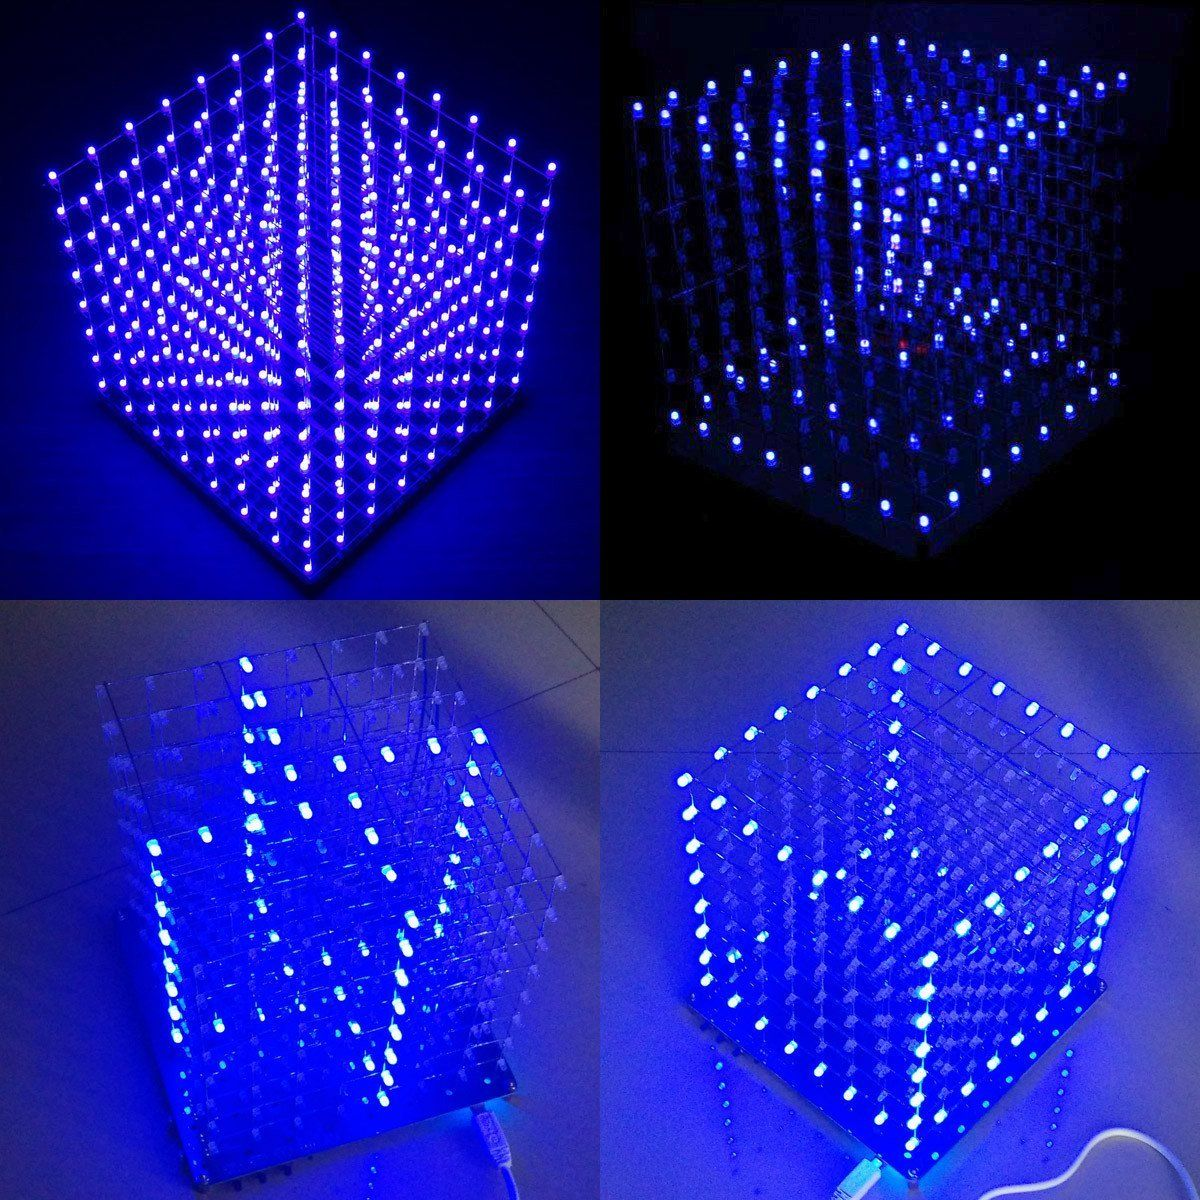 Arduino Diy 8x8x8 Led Cube 3d Light Square Electronic Soldering Sarter Kit Board Blue Led Diy Electronics Diy Electronic Kits Diy Kits